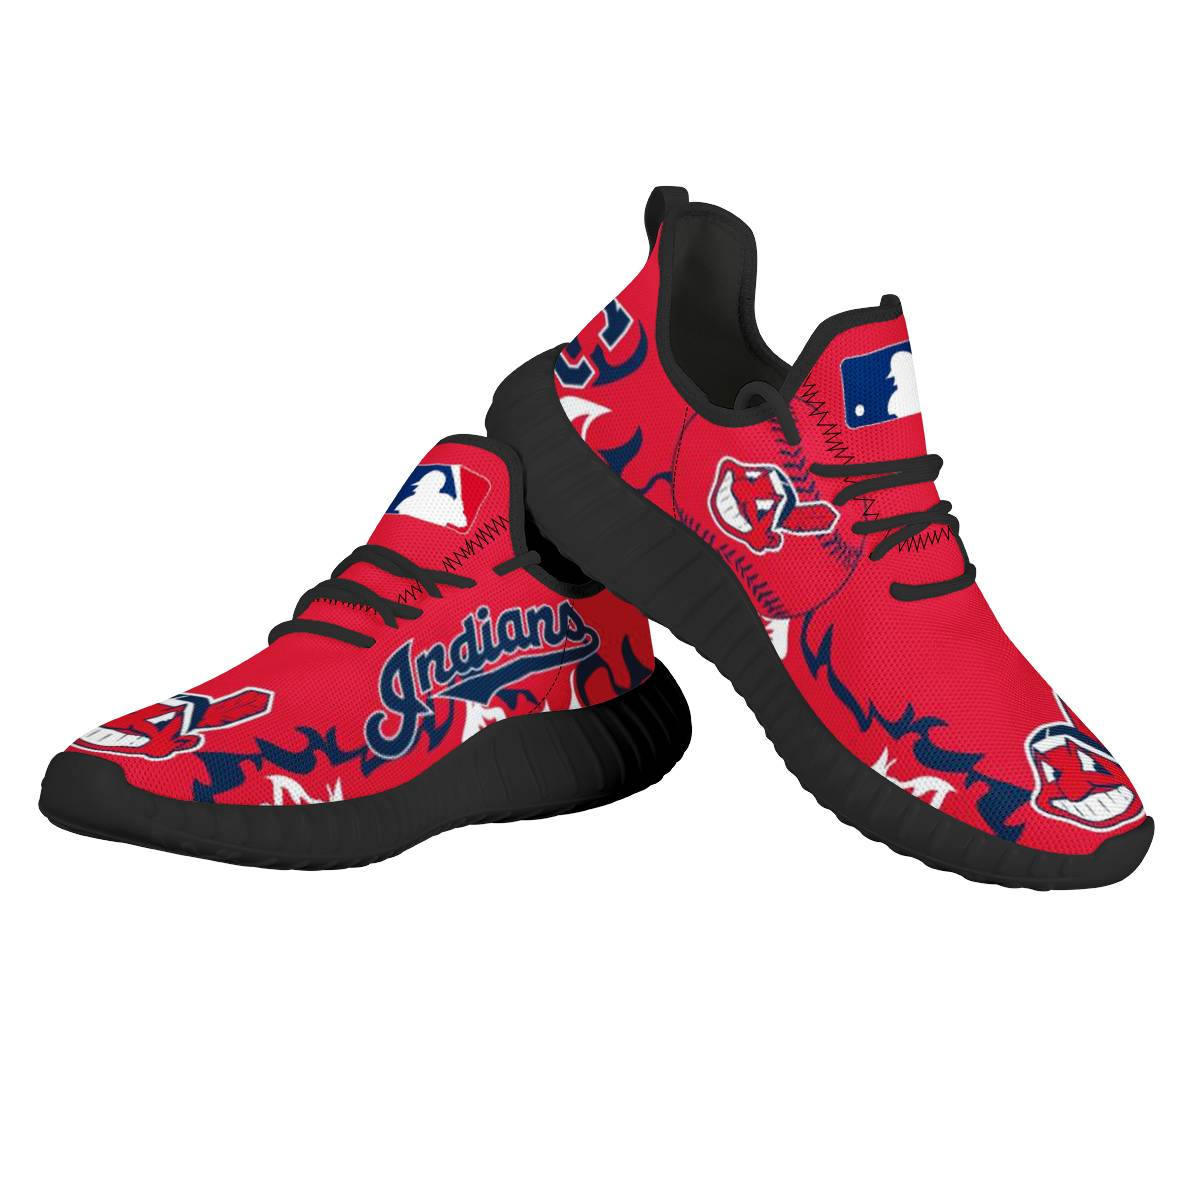 Women's Cleveland Indians Mesh Knit Sneakers/Shoes 001